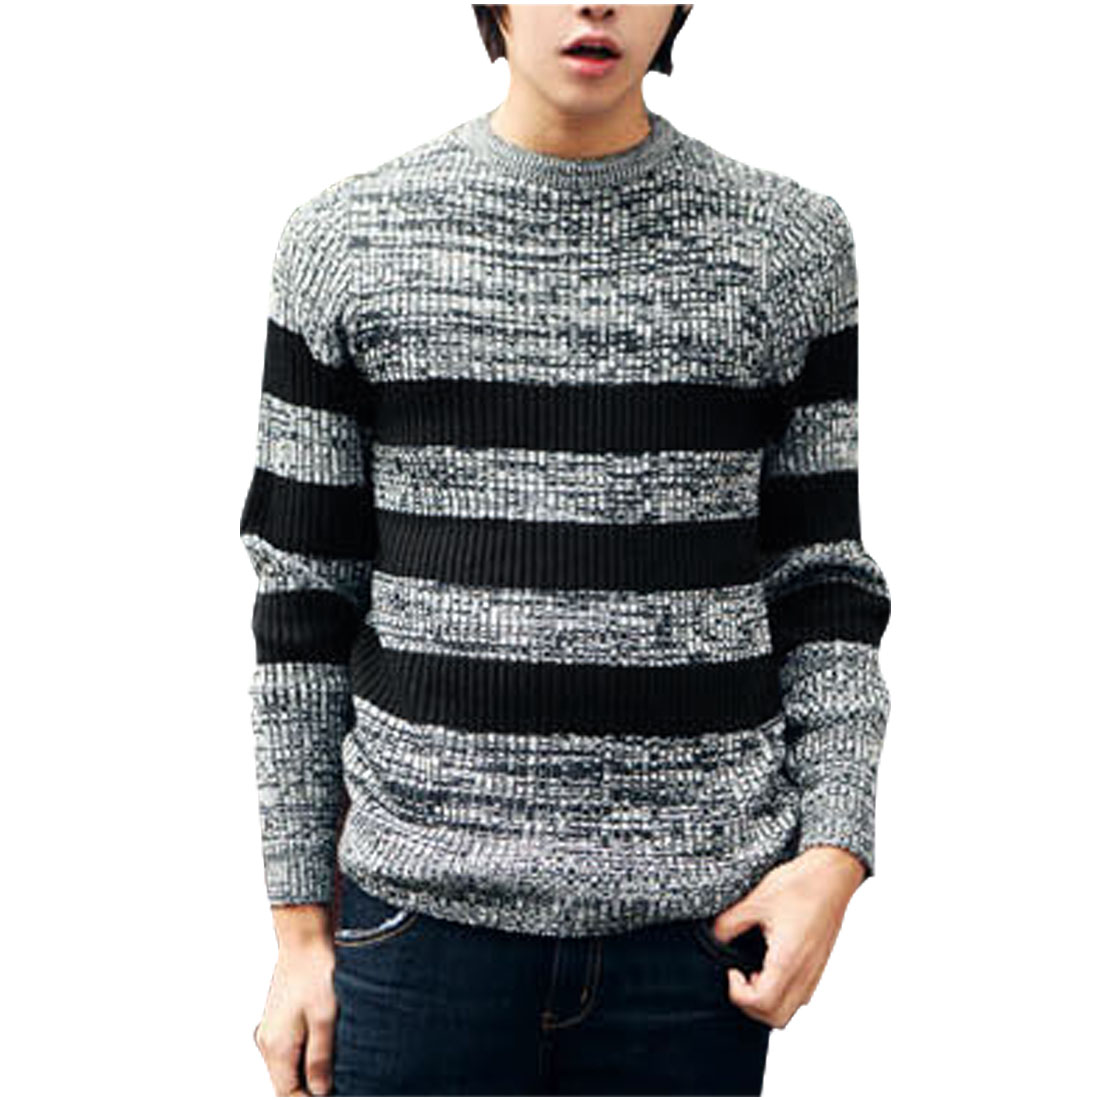 Men Black Gray Round Neck Pullover Stripes Decor Knit Shirt S